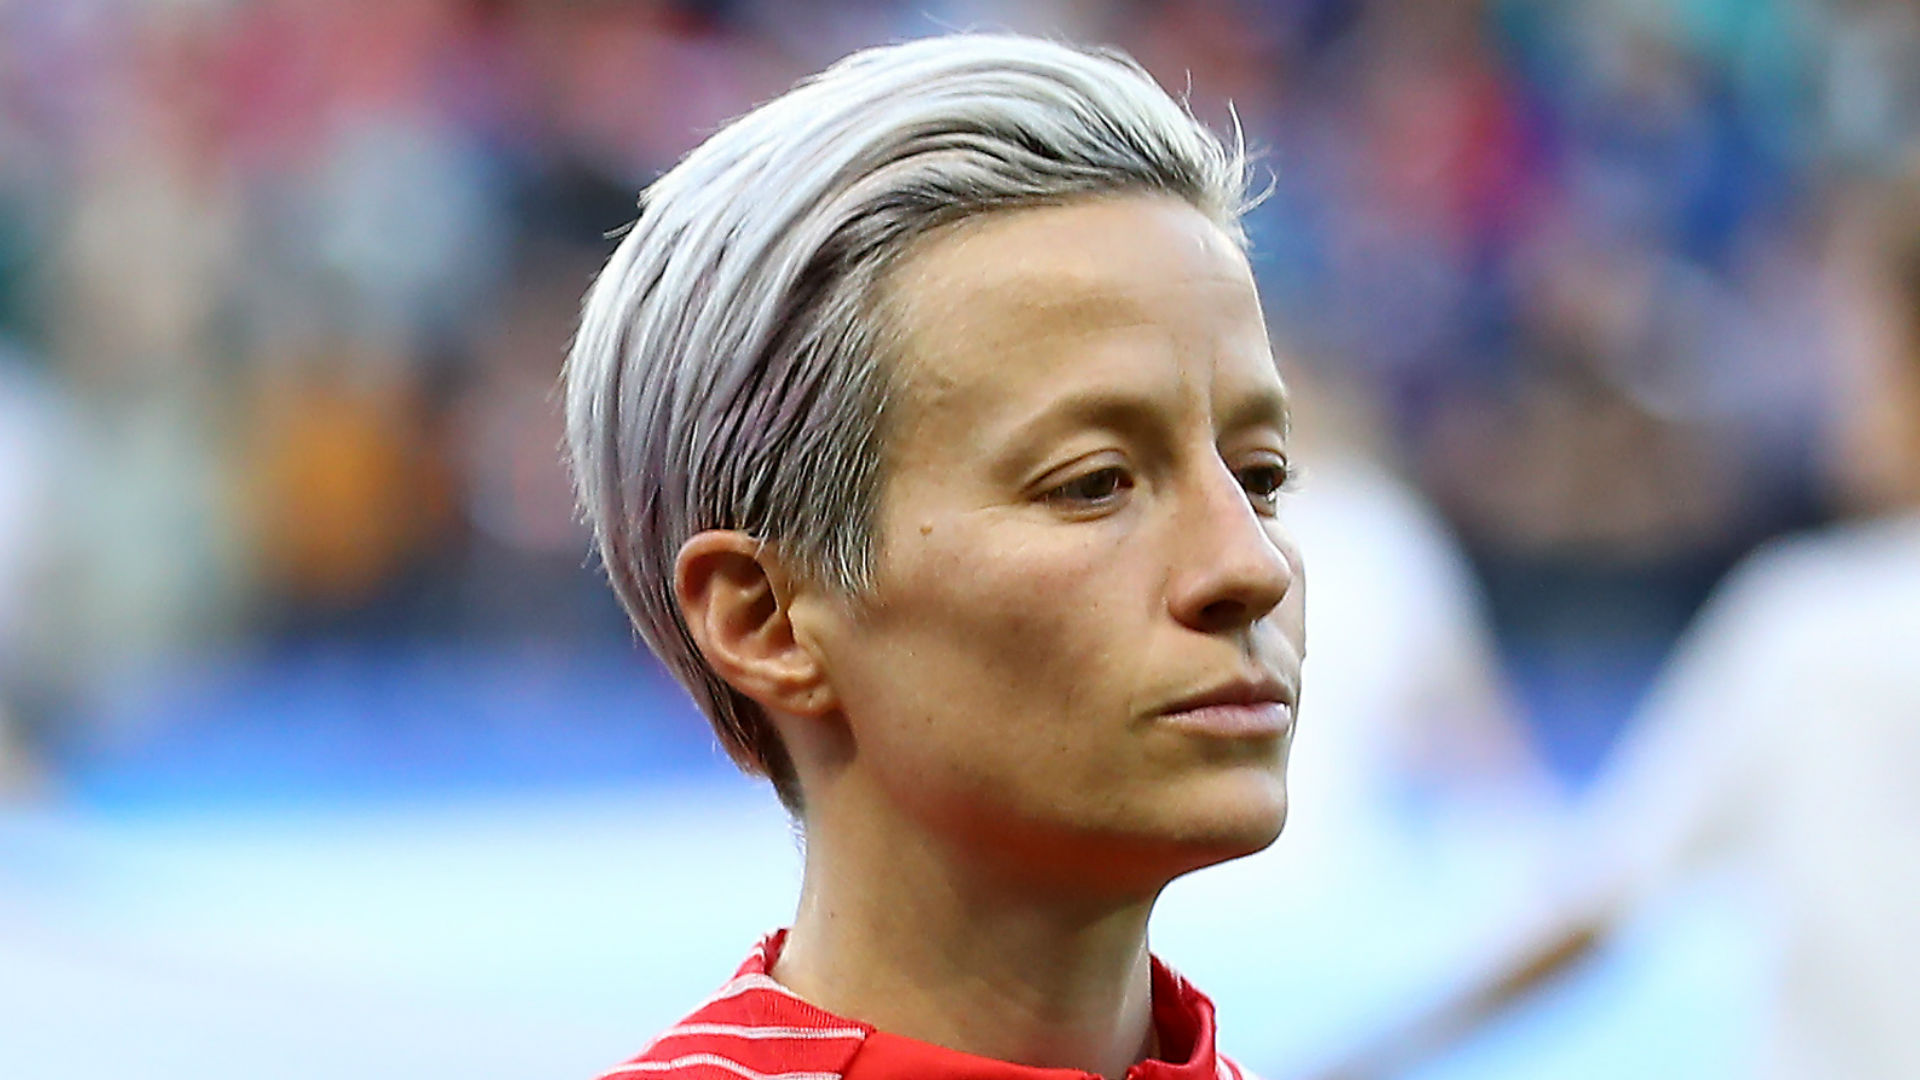 Trump says US soccer star wrong to protest during anthem